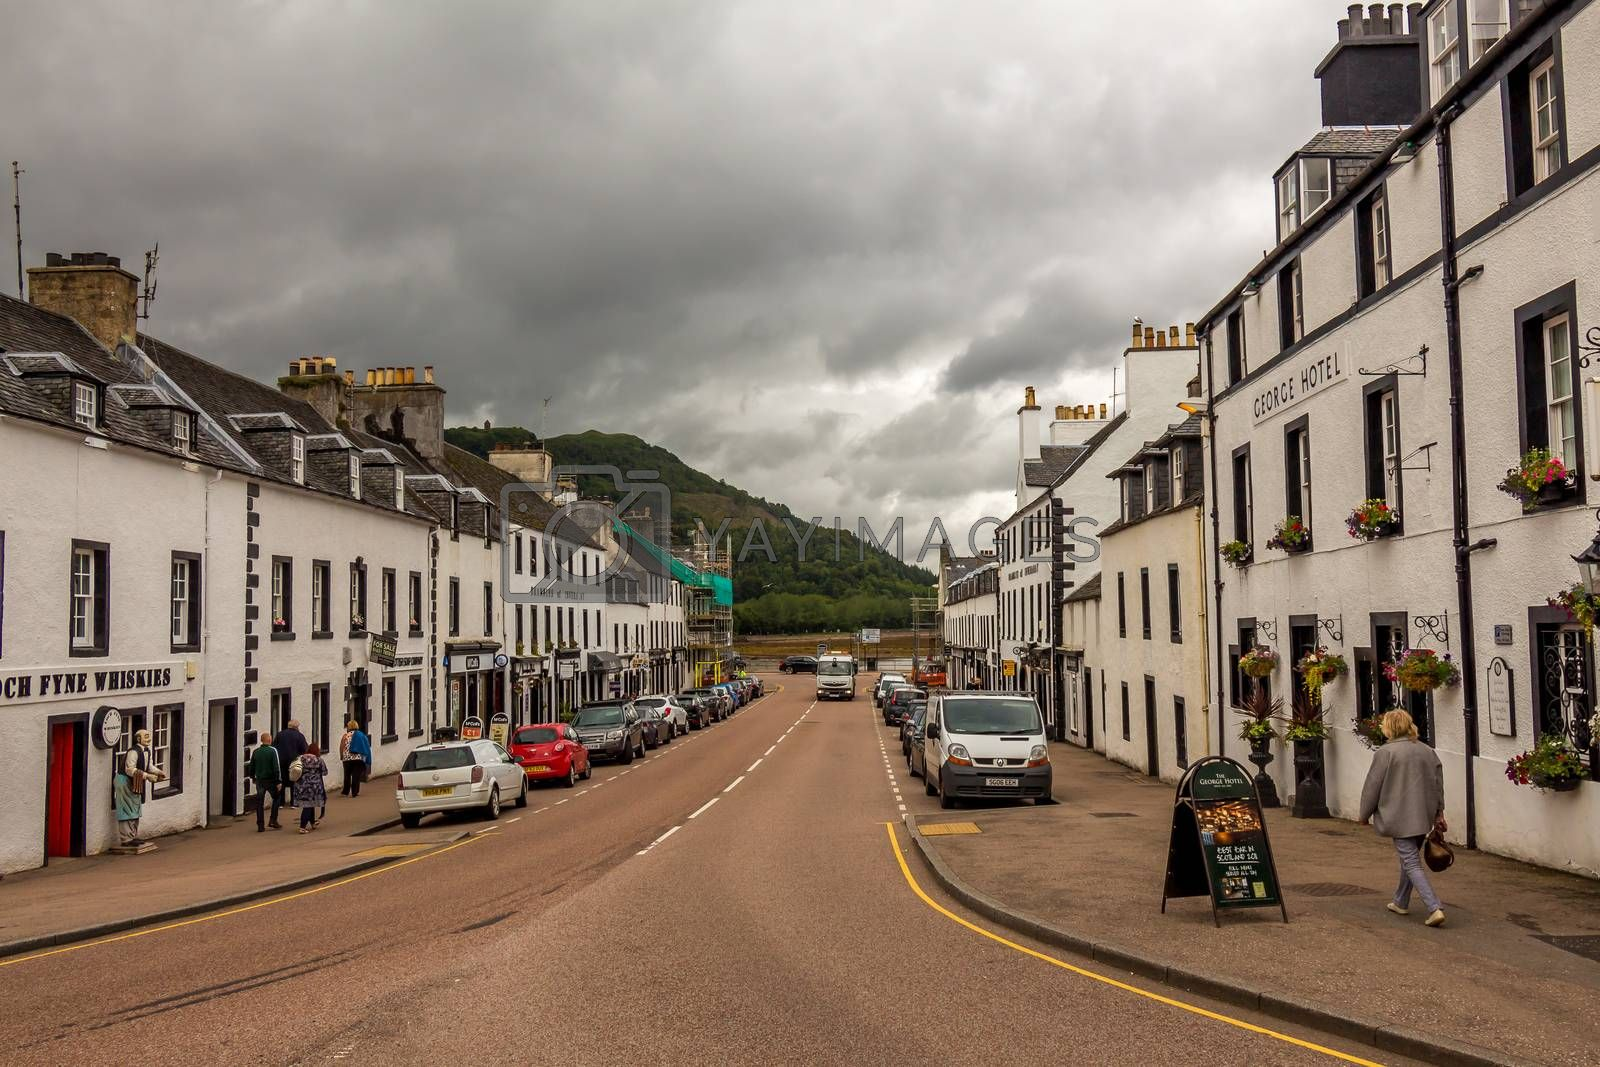 Inveraray, Scotland - July 14th 2016: The Main Street of the West Coast of Scotland town of Inverarary on cloudy summers day in Argyll, Scotland